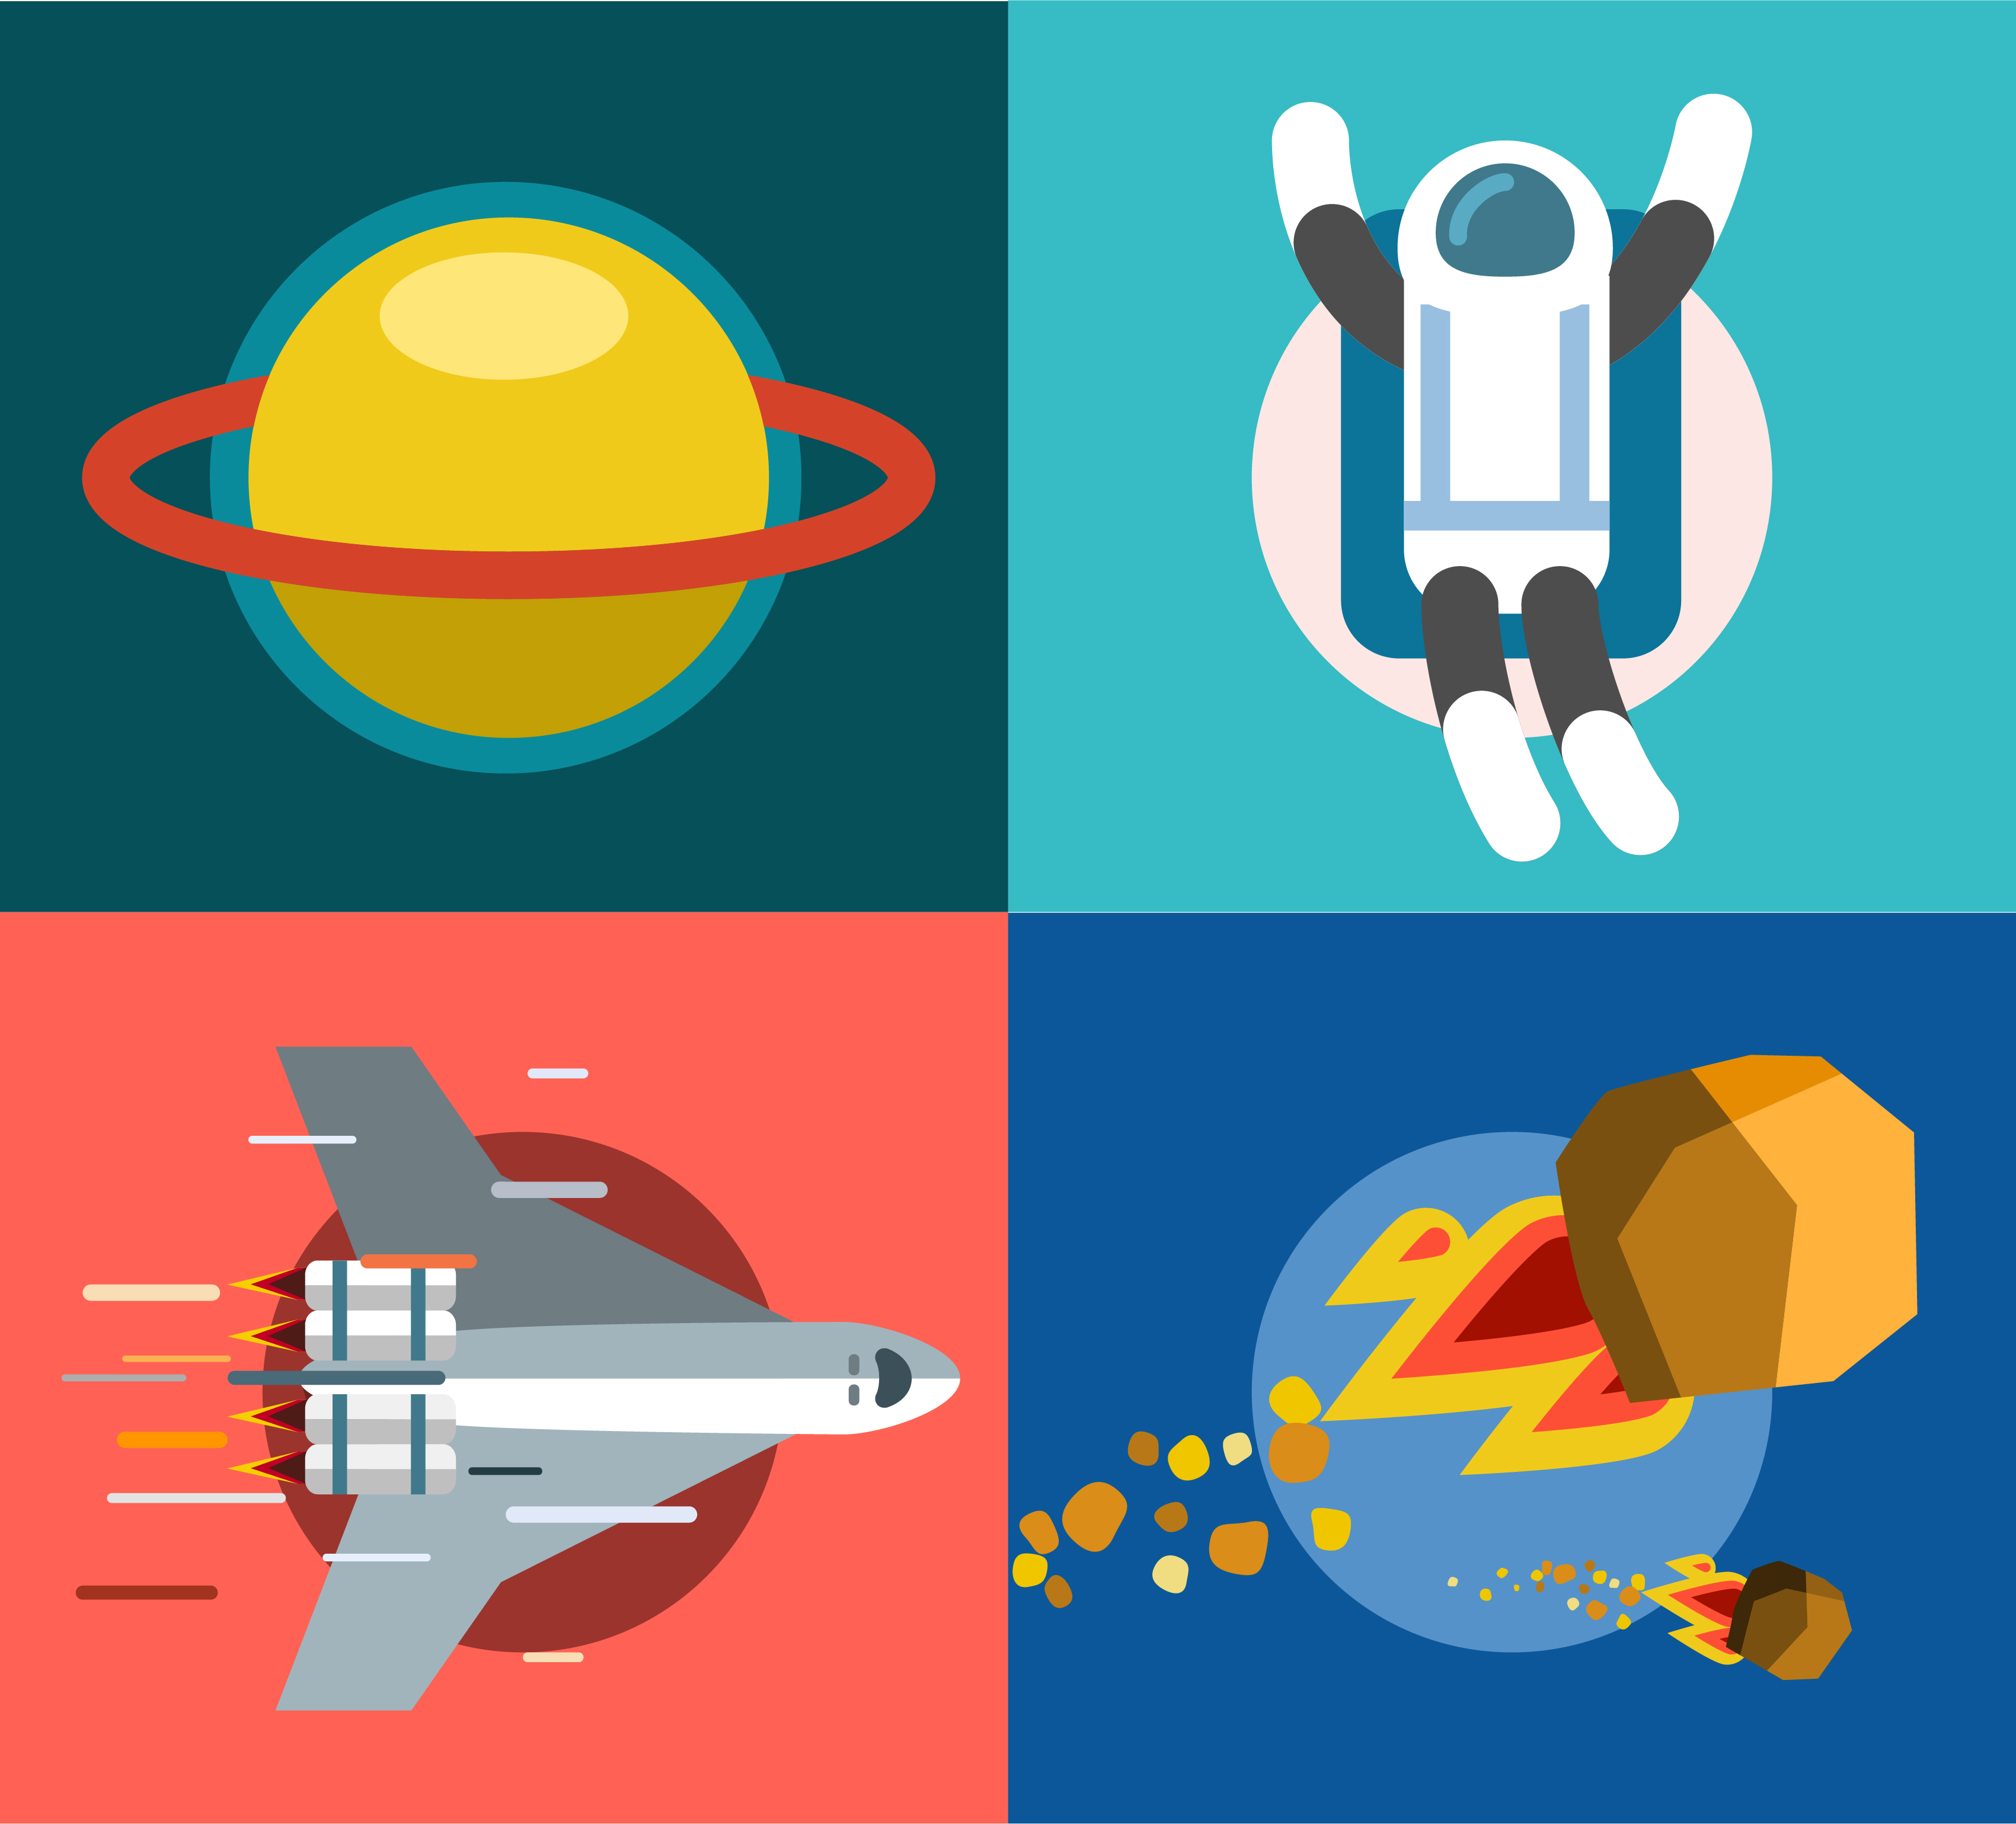 Collection of spaceships and planets, space vector illustration Photoshop brush